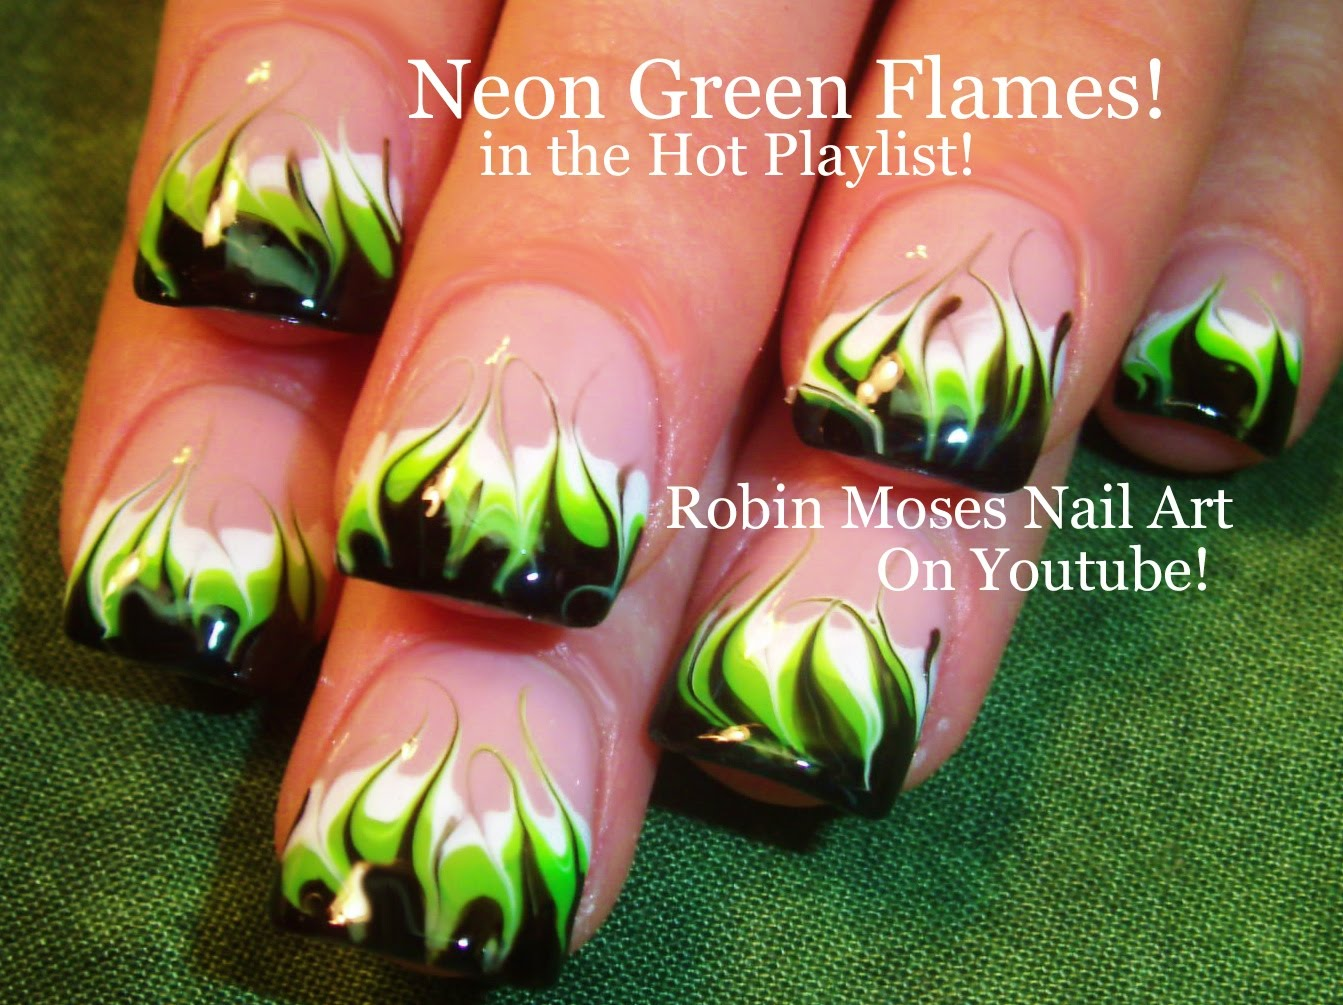 Try Out these Awesome Marble Flame Nails That Require No Water!